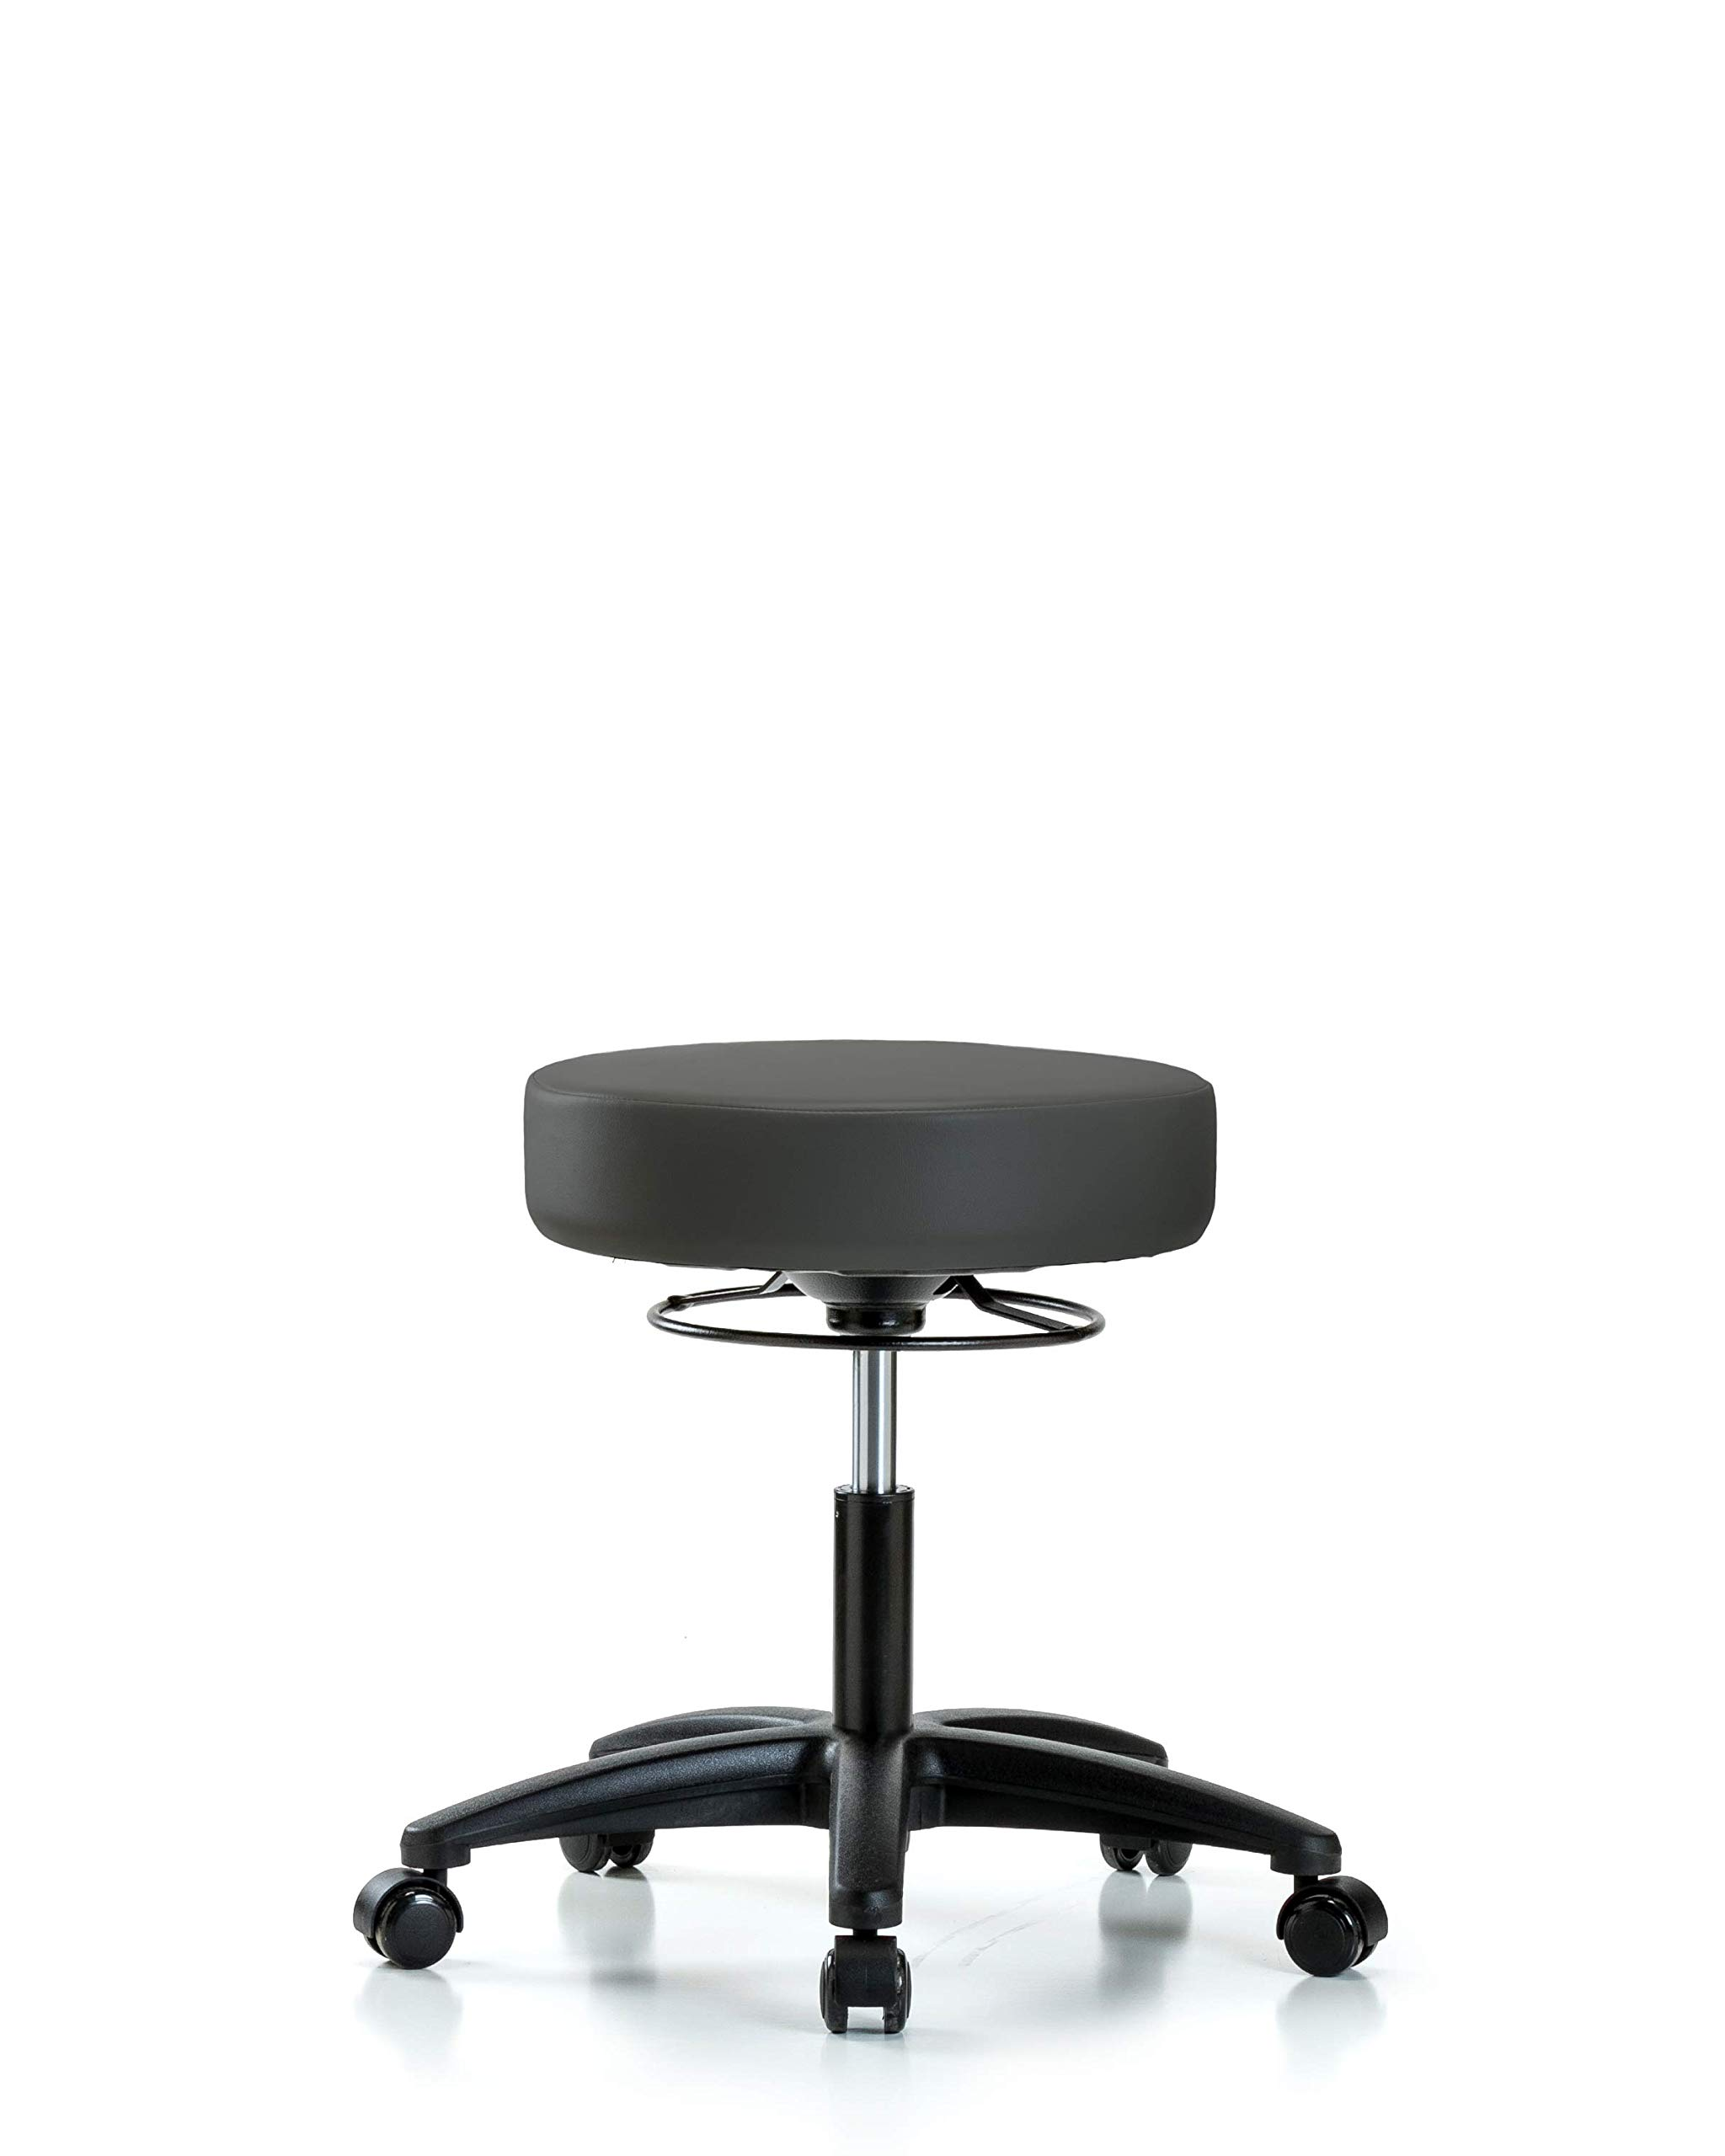 Adjustable Stool for Exam Rooms, Labs, and Dentists with Wheels - Desk Height, Charcoal